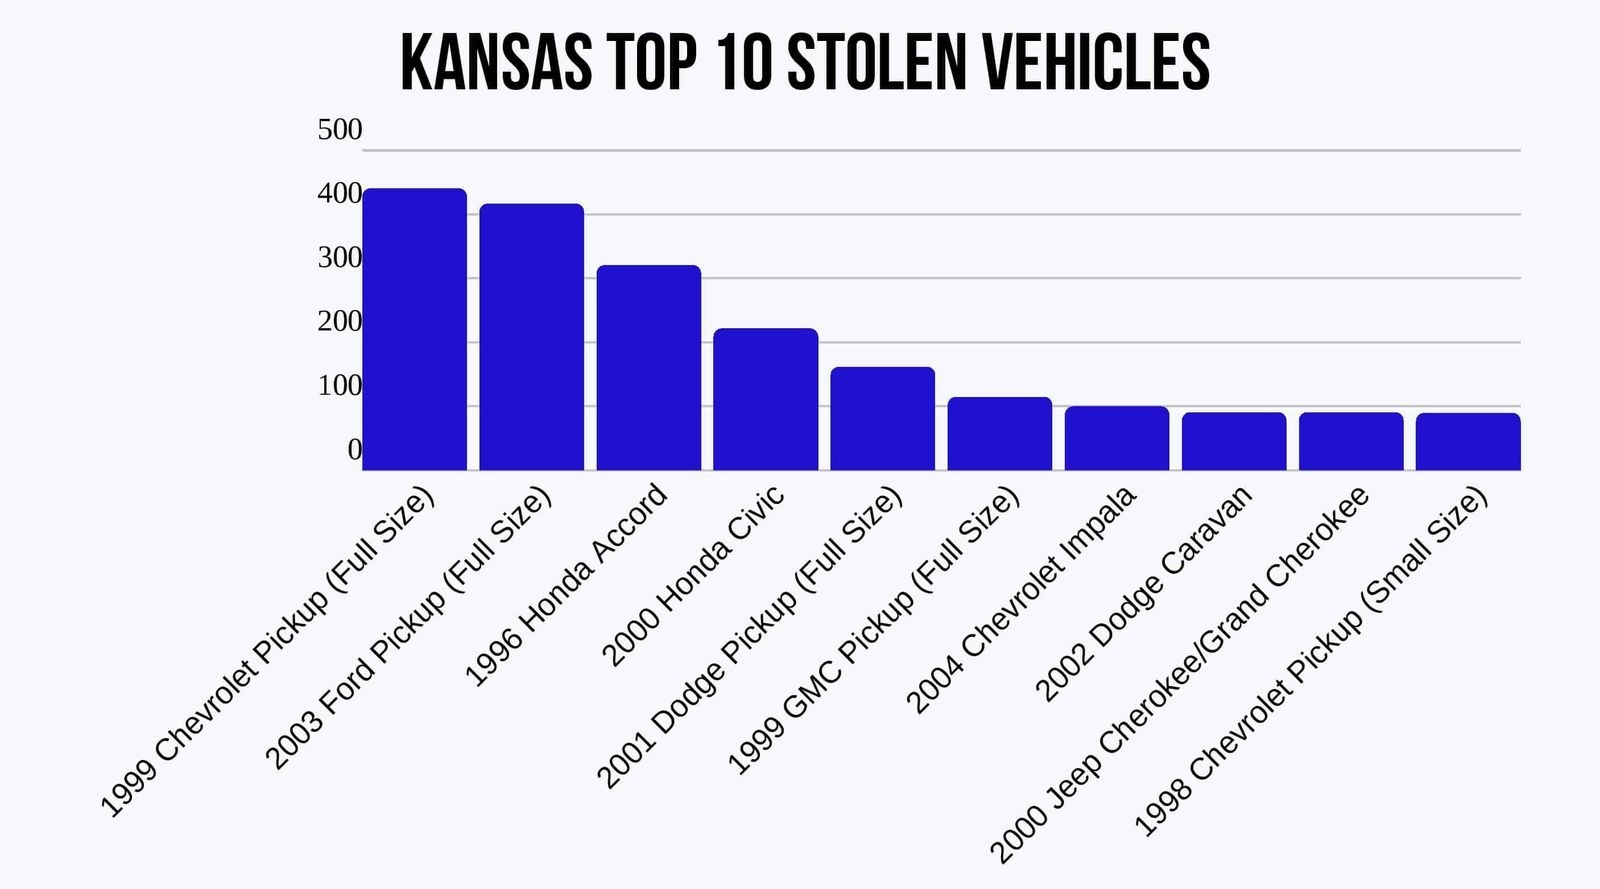 Kansas top 10 stolen vehicles.